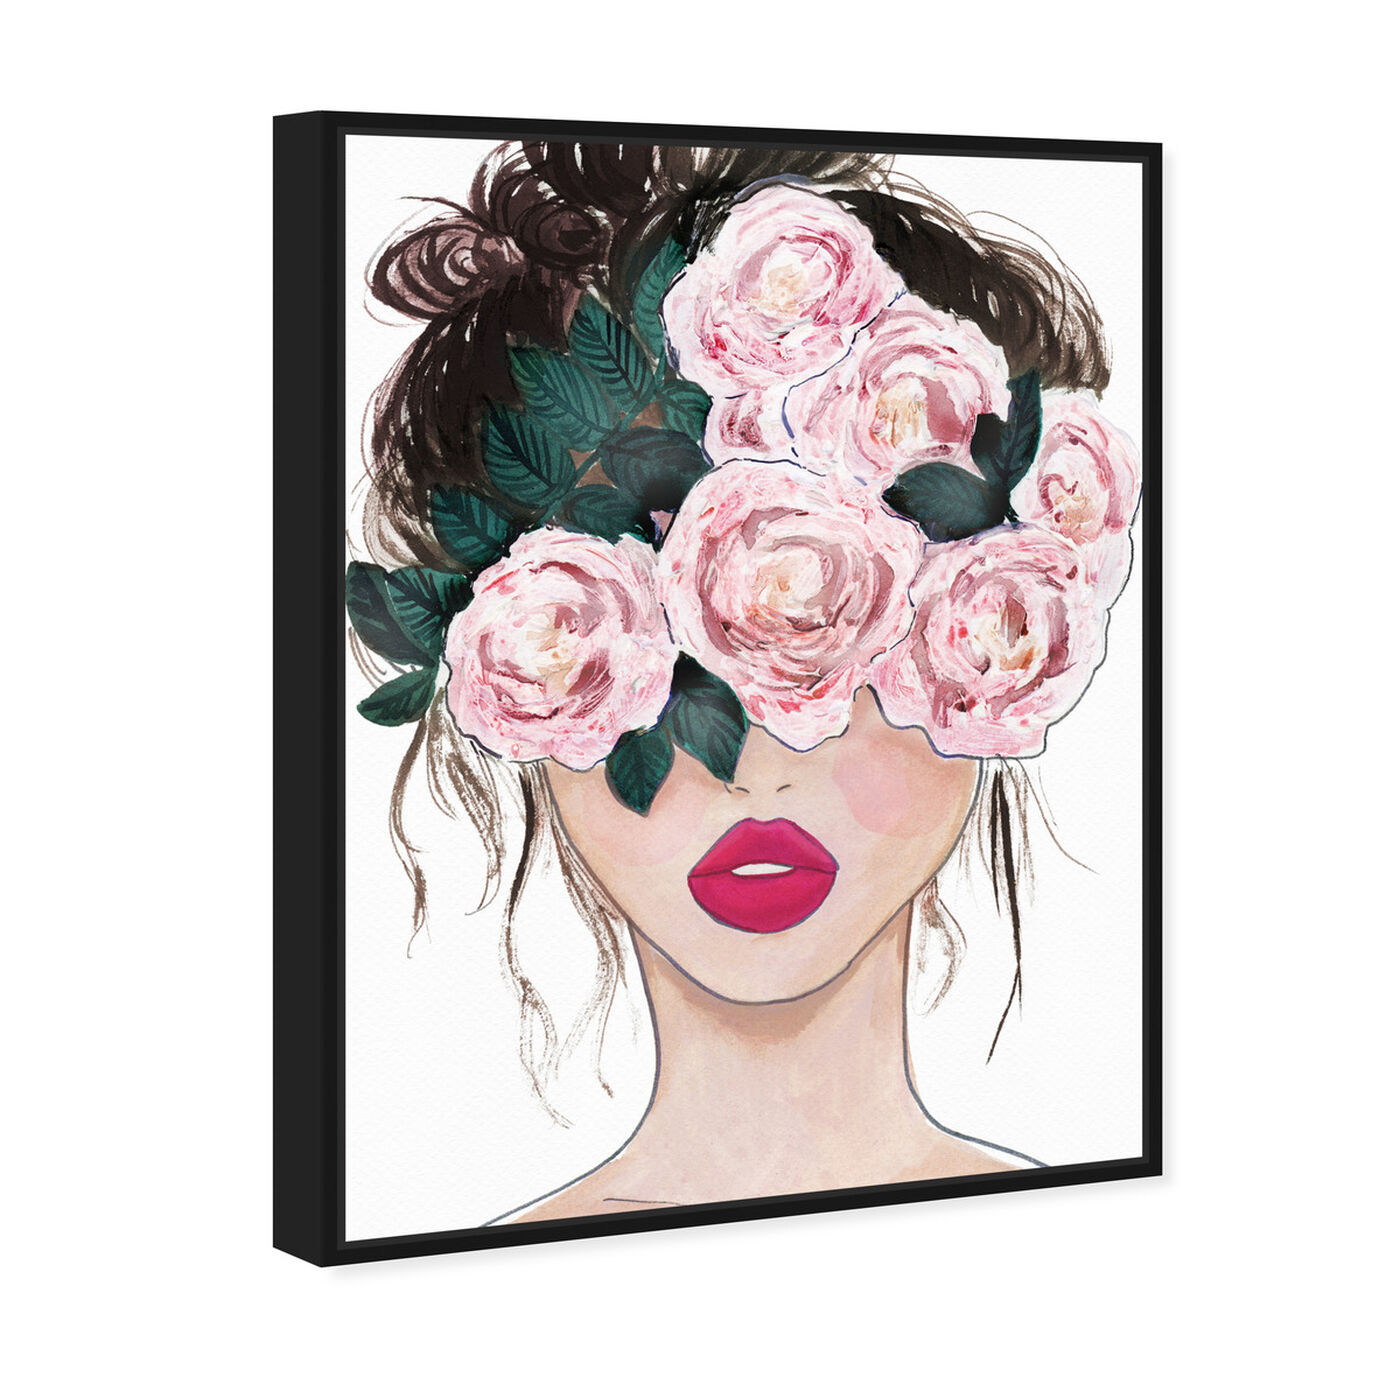 Angled view of Flower Blind featuring floral and botanical and florals art.